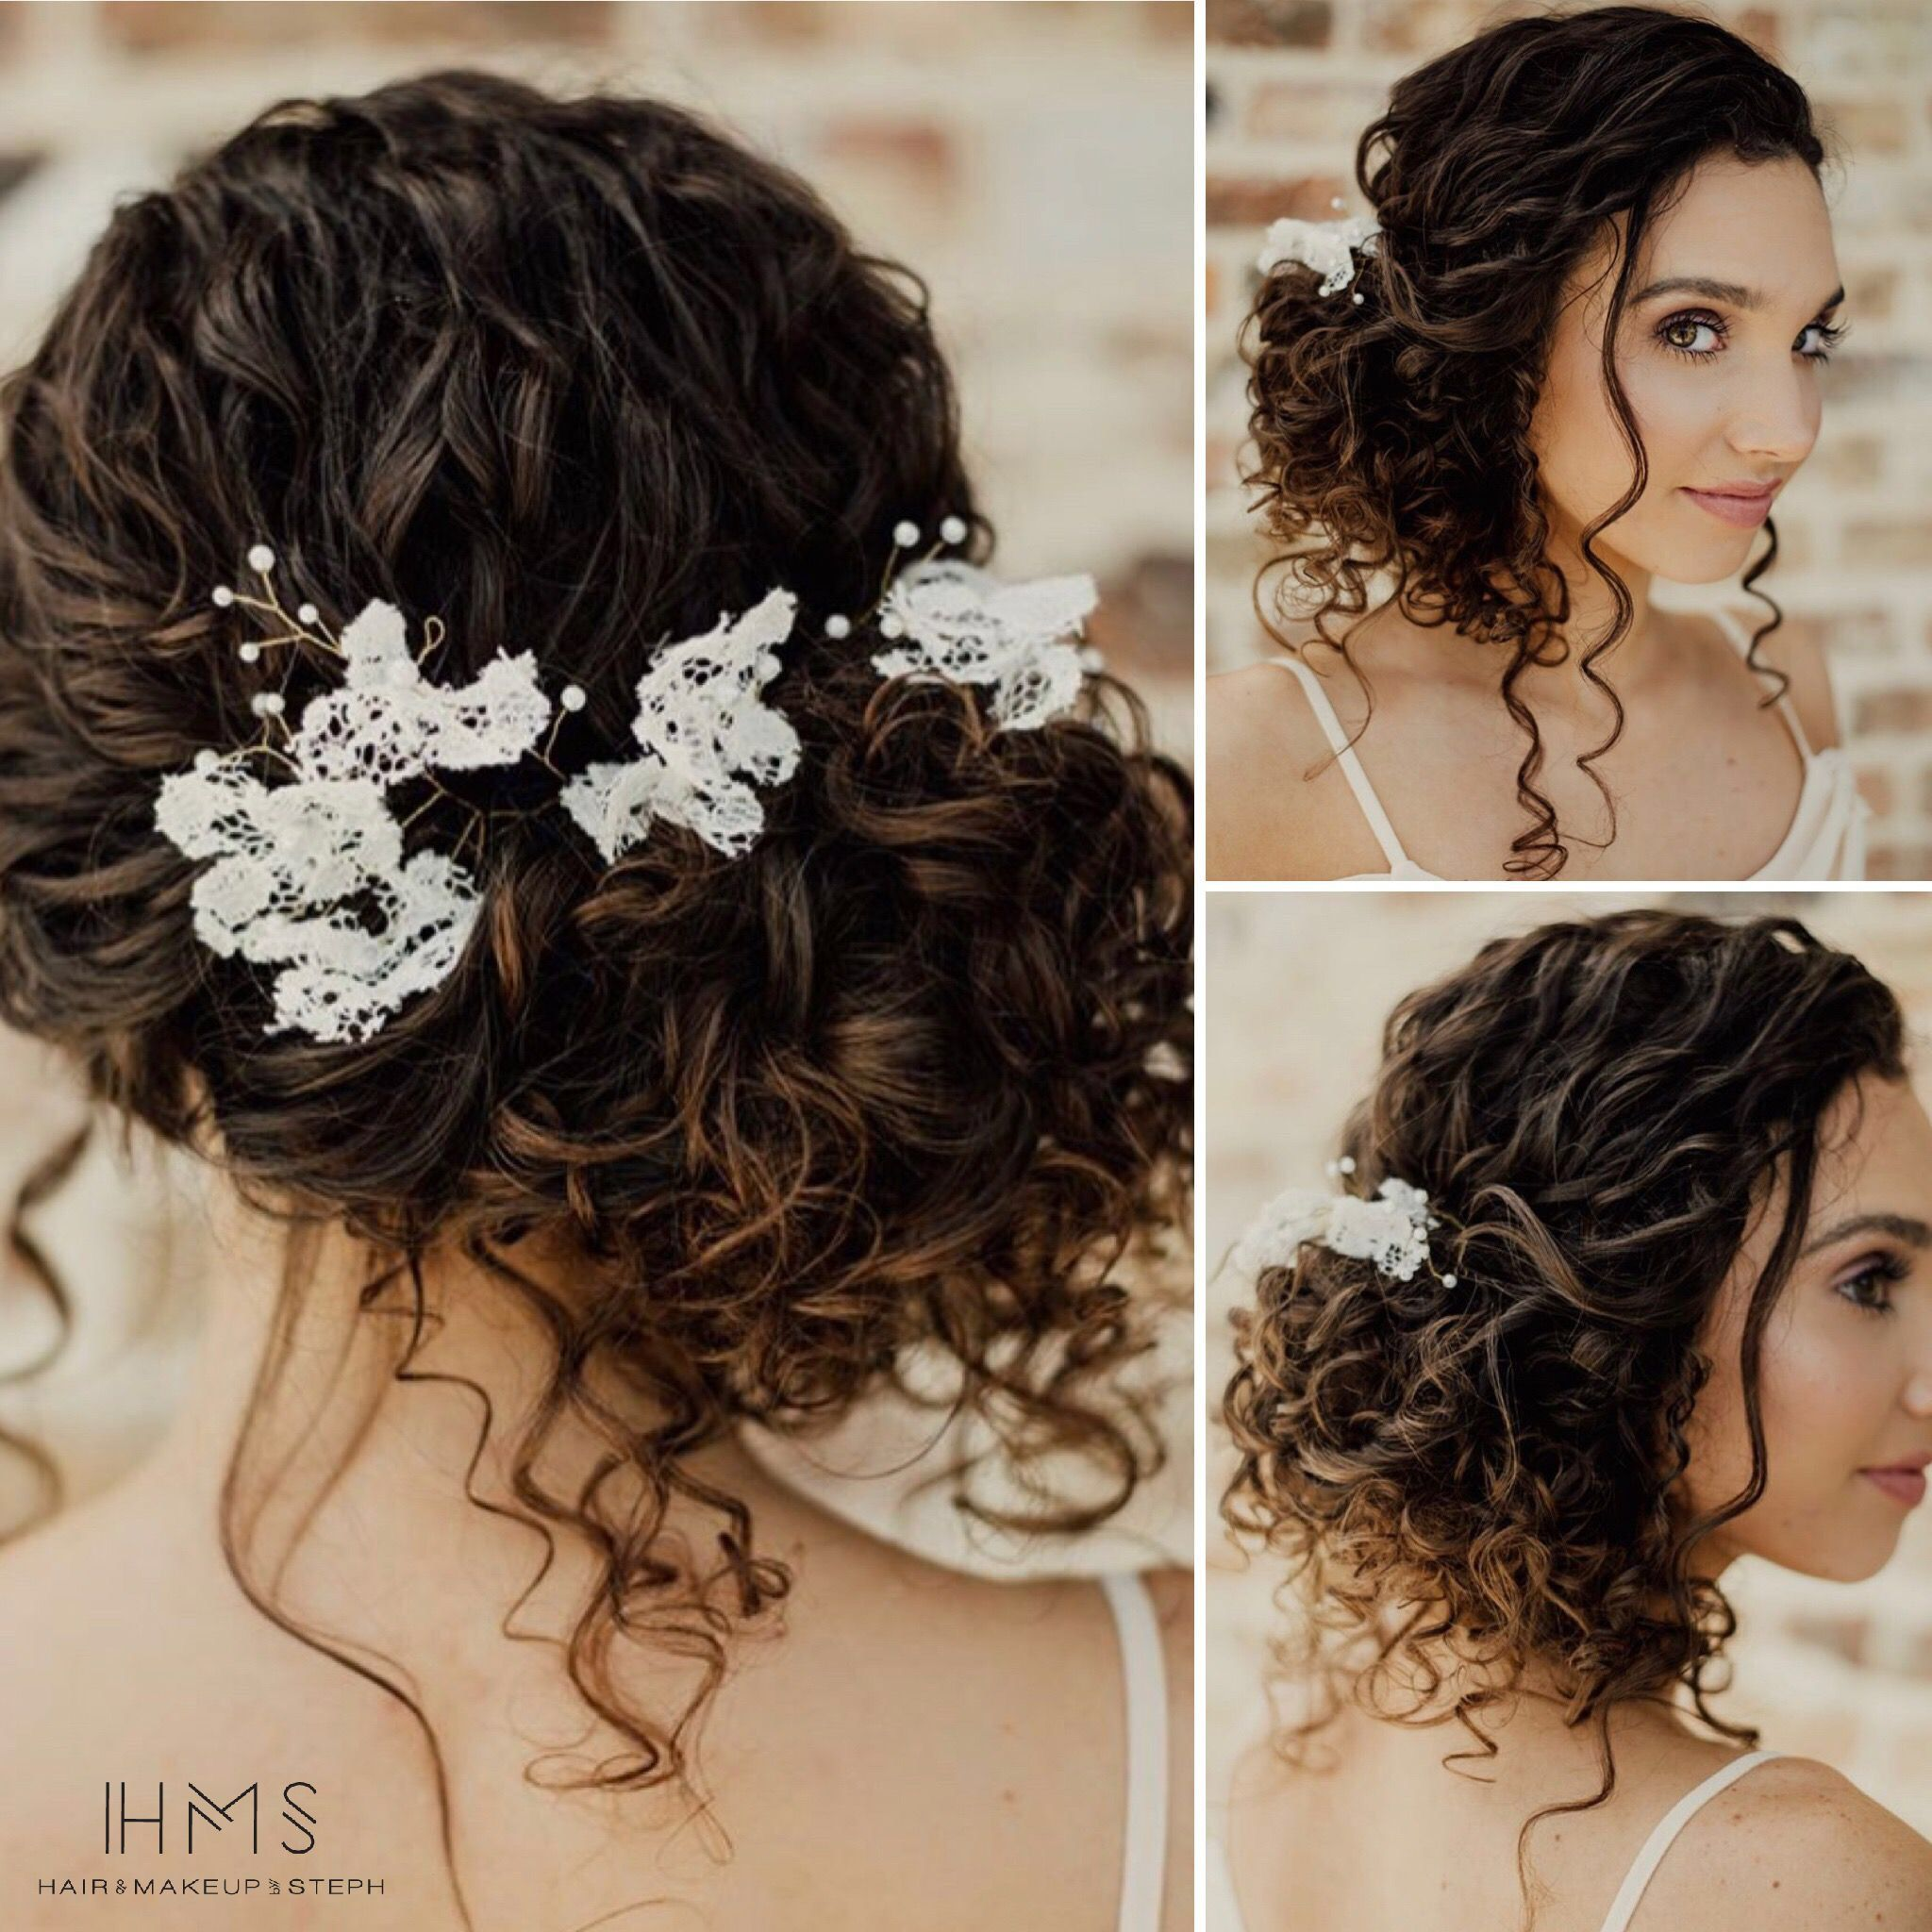 Naturally Curly Bridal Updo Curl Natural Bride Bridal Updo Wedding Hair Specialoccasion Redc Curly Wedding Hair Naturally Curly Hair Updo Bridal Hair